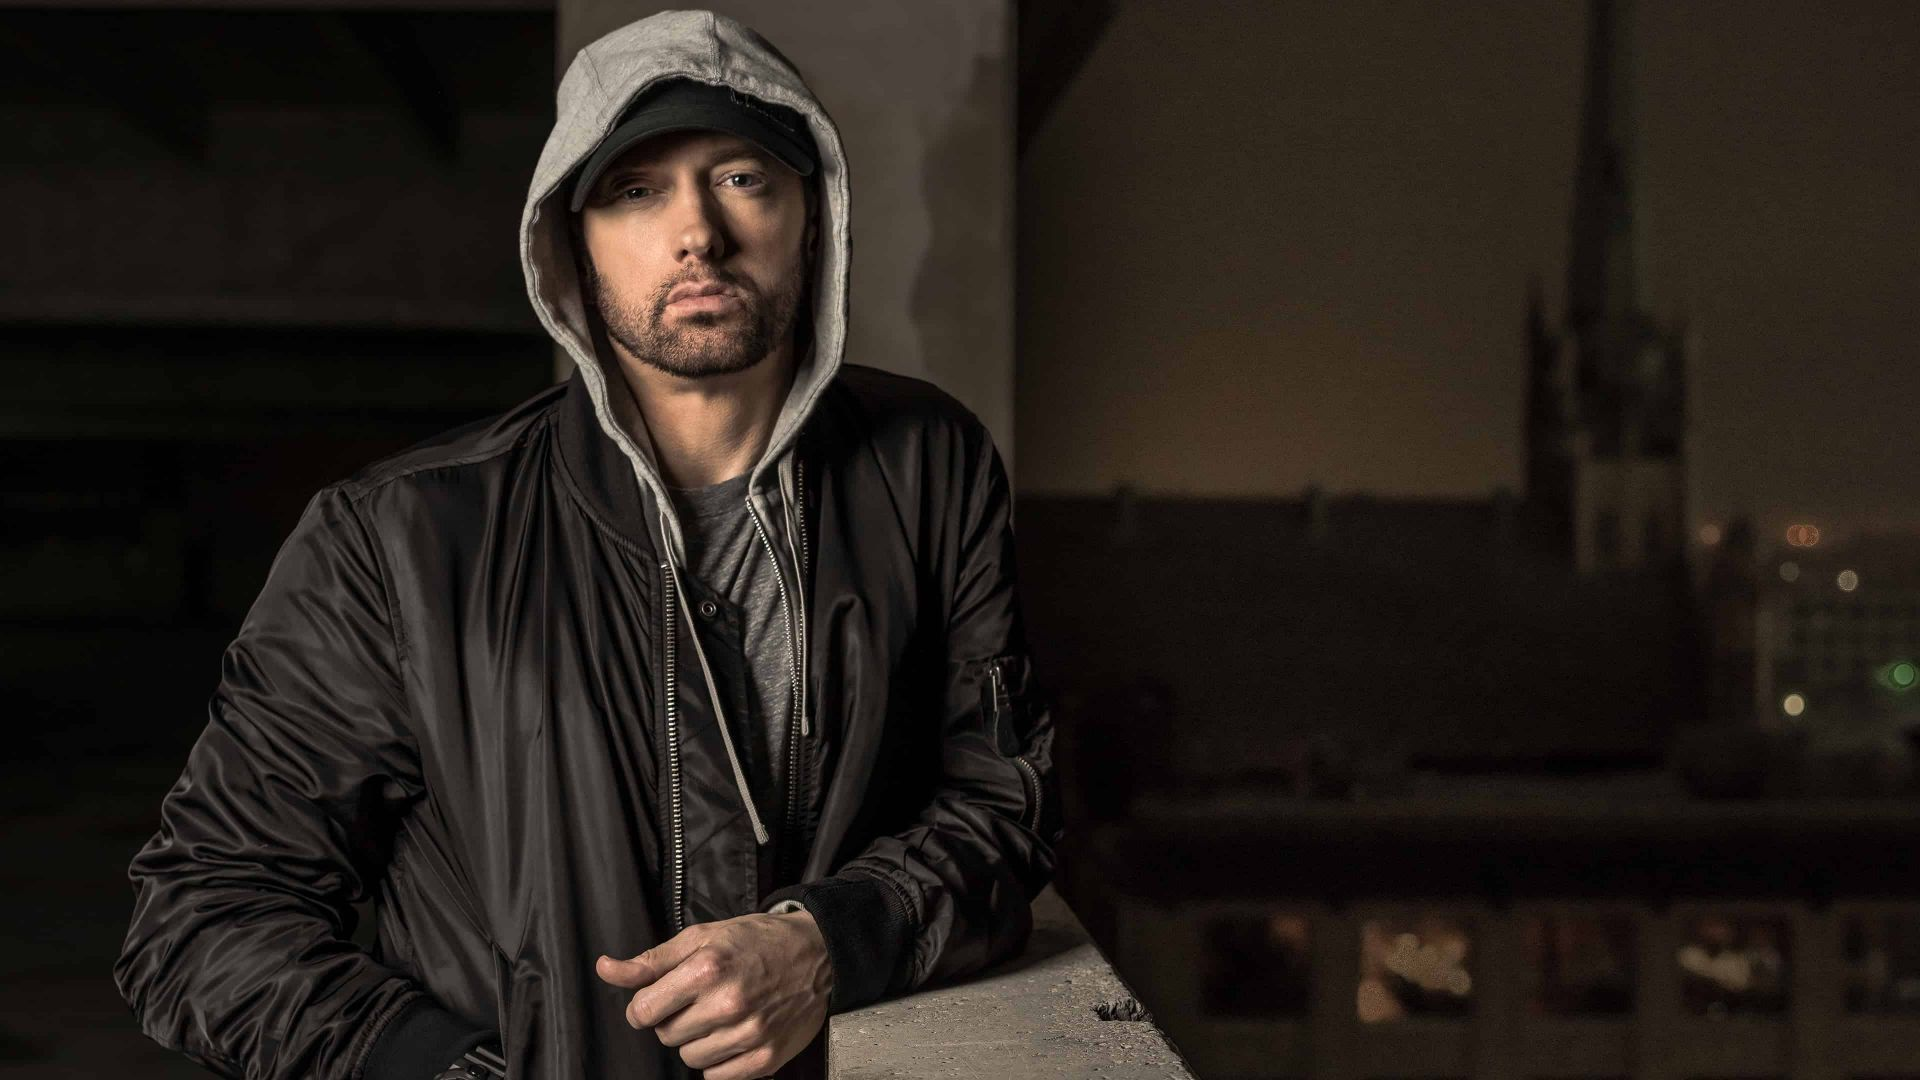 Eminem Singer Rapper Actor 4k Horizontalbackgrounds